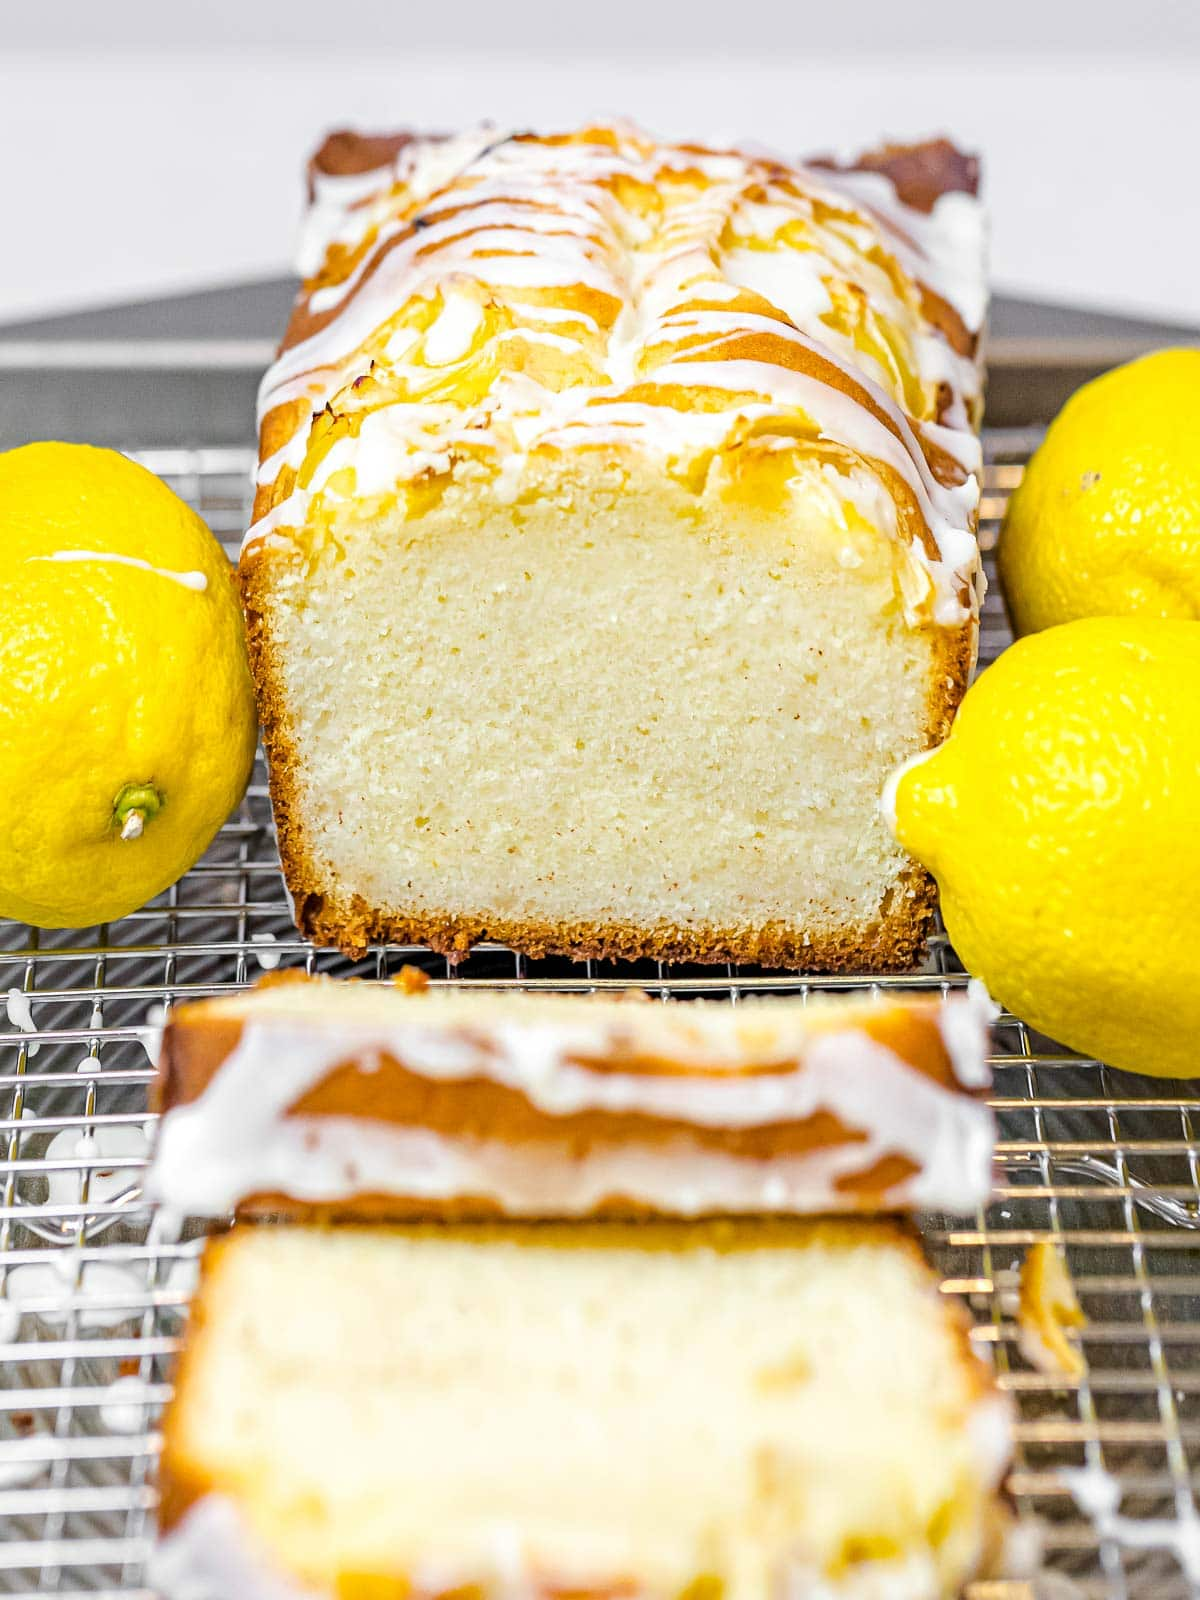 lemon pound cake glazed with icing with a golden brown crust sliced open next to lemons